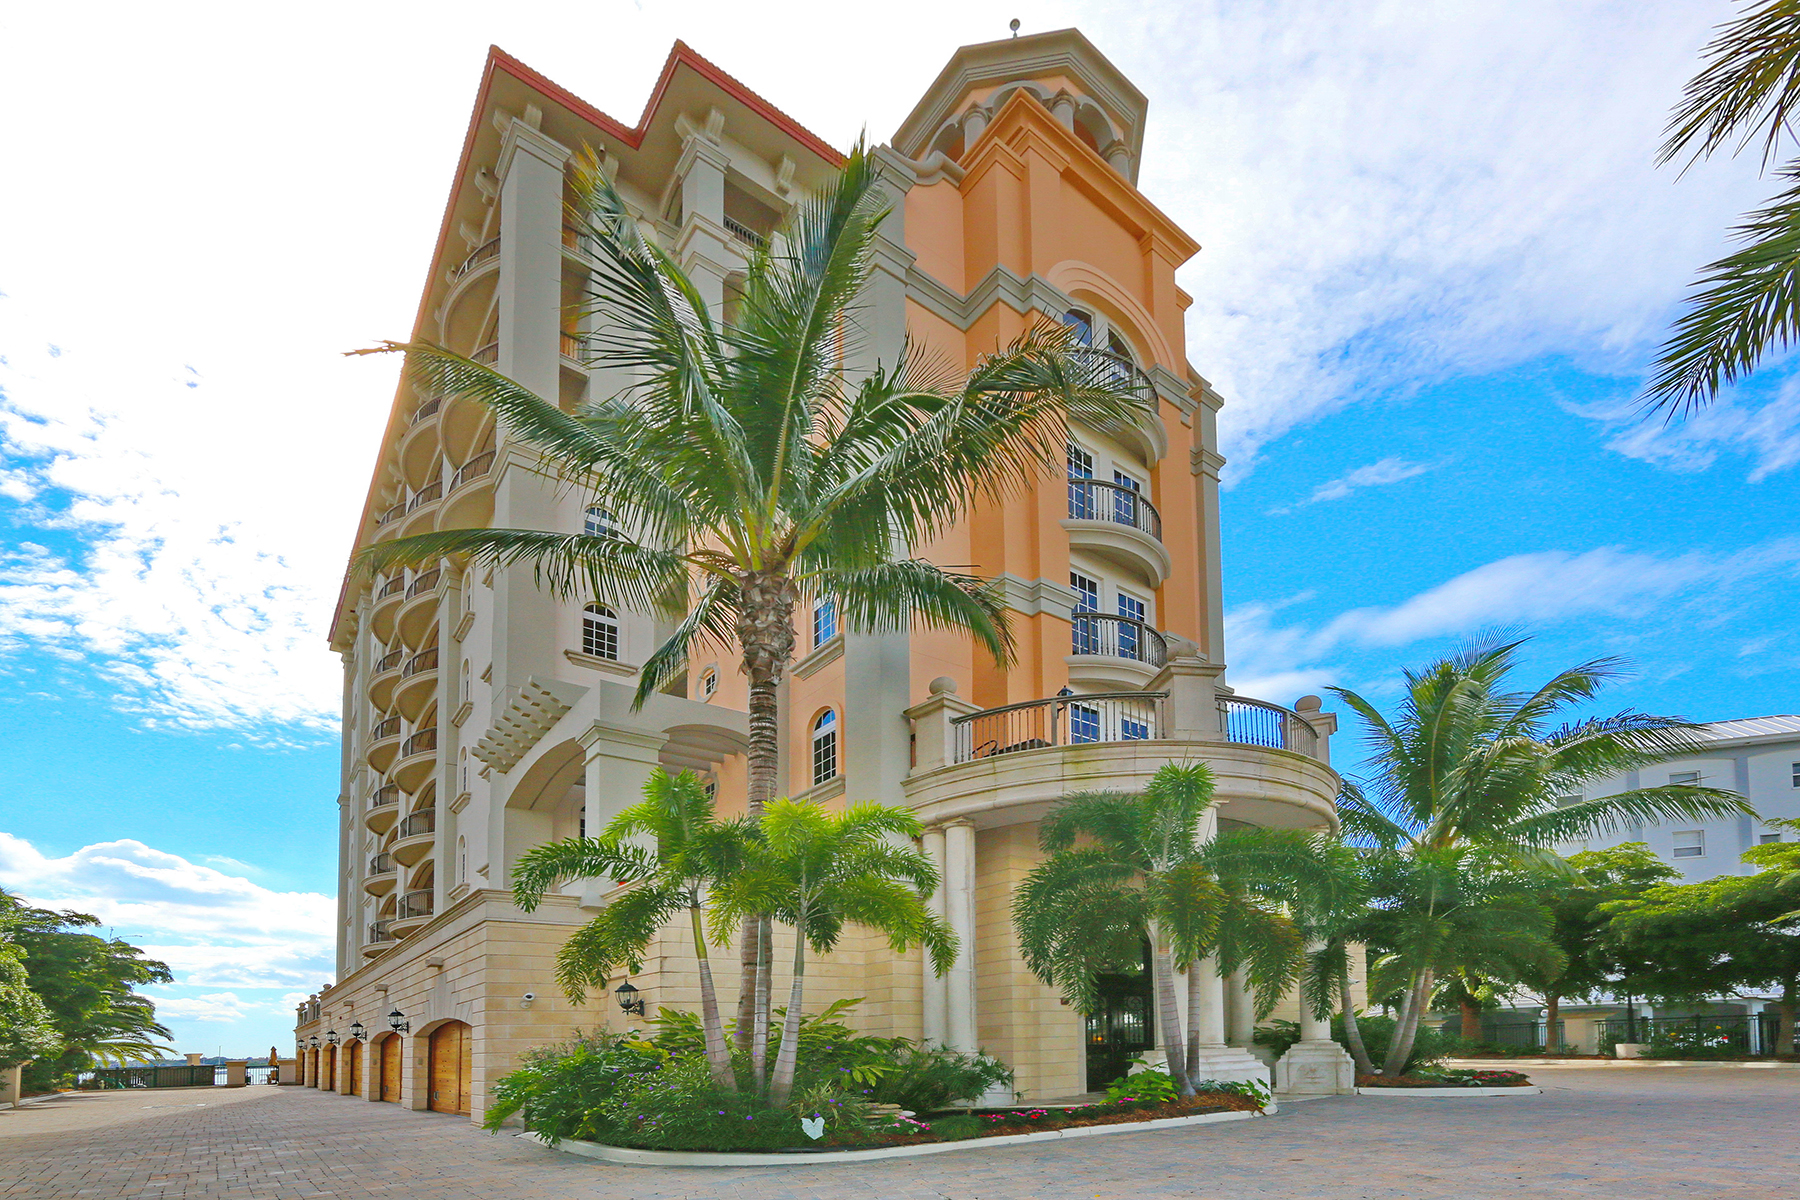 Condominium for Sale at GRANDE RIVIERA 420 Golden Gate Pt 700PH Sarasota, Florida 34236 United States